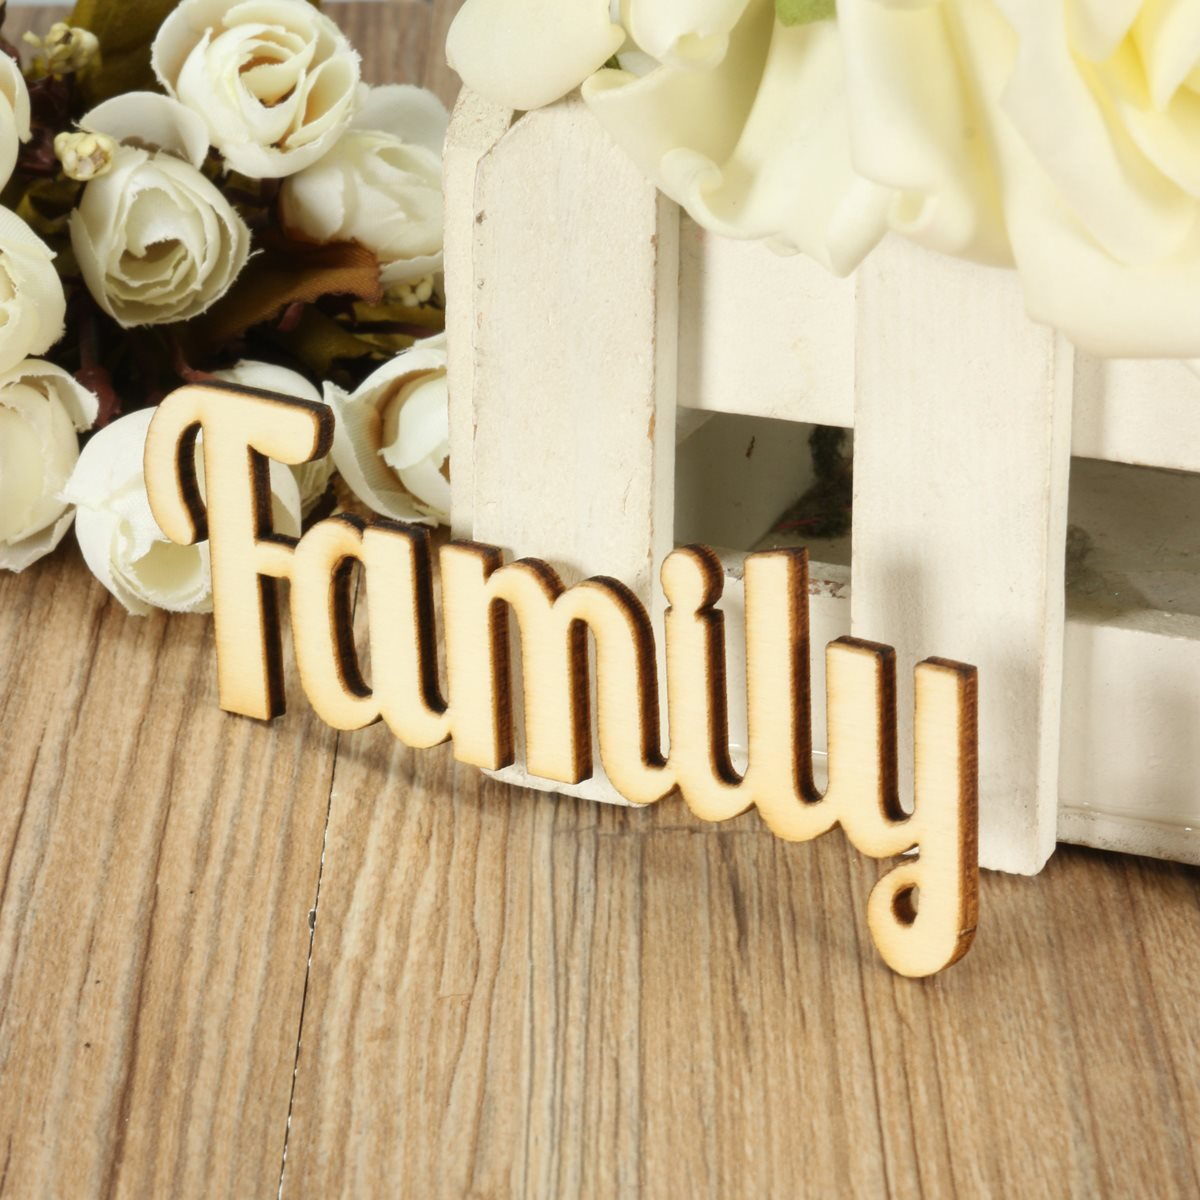 Ratings Feedback For Gavan Wood Painting Decorating: Popular Family Wooden Letters-Buy Cheap Family Wooden